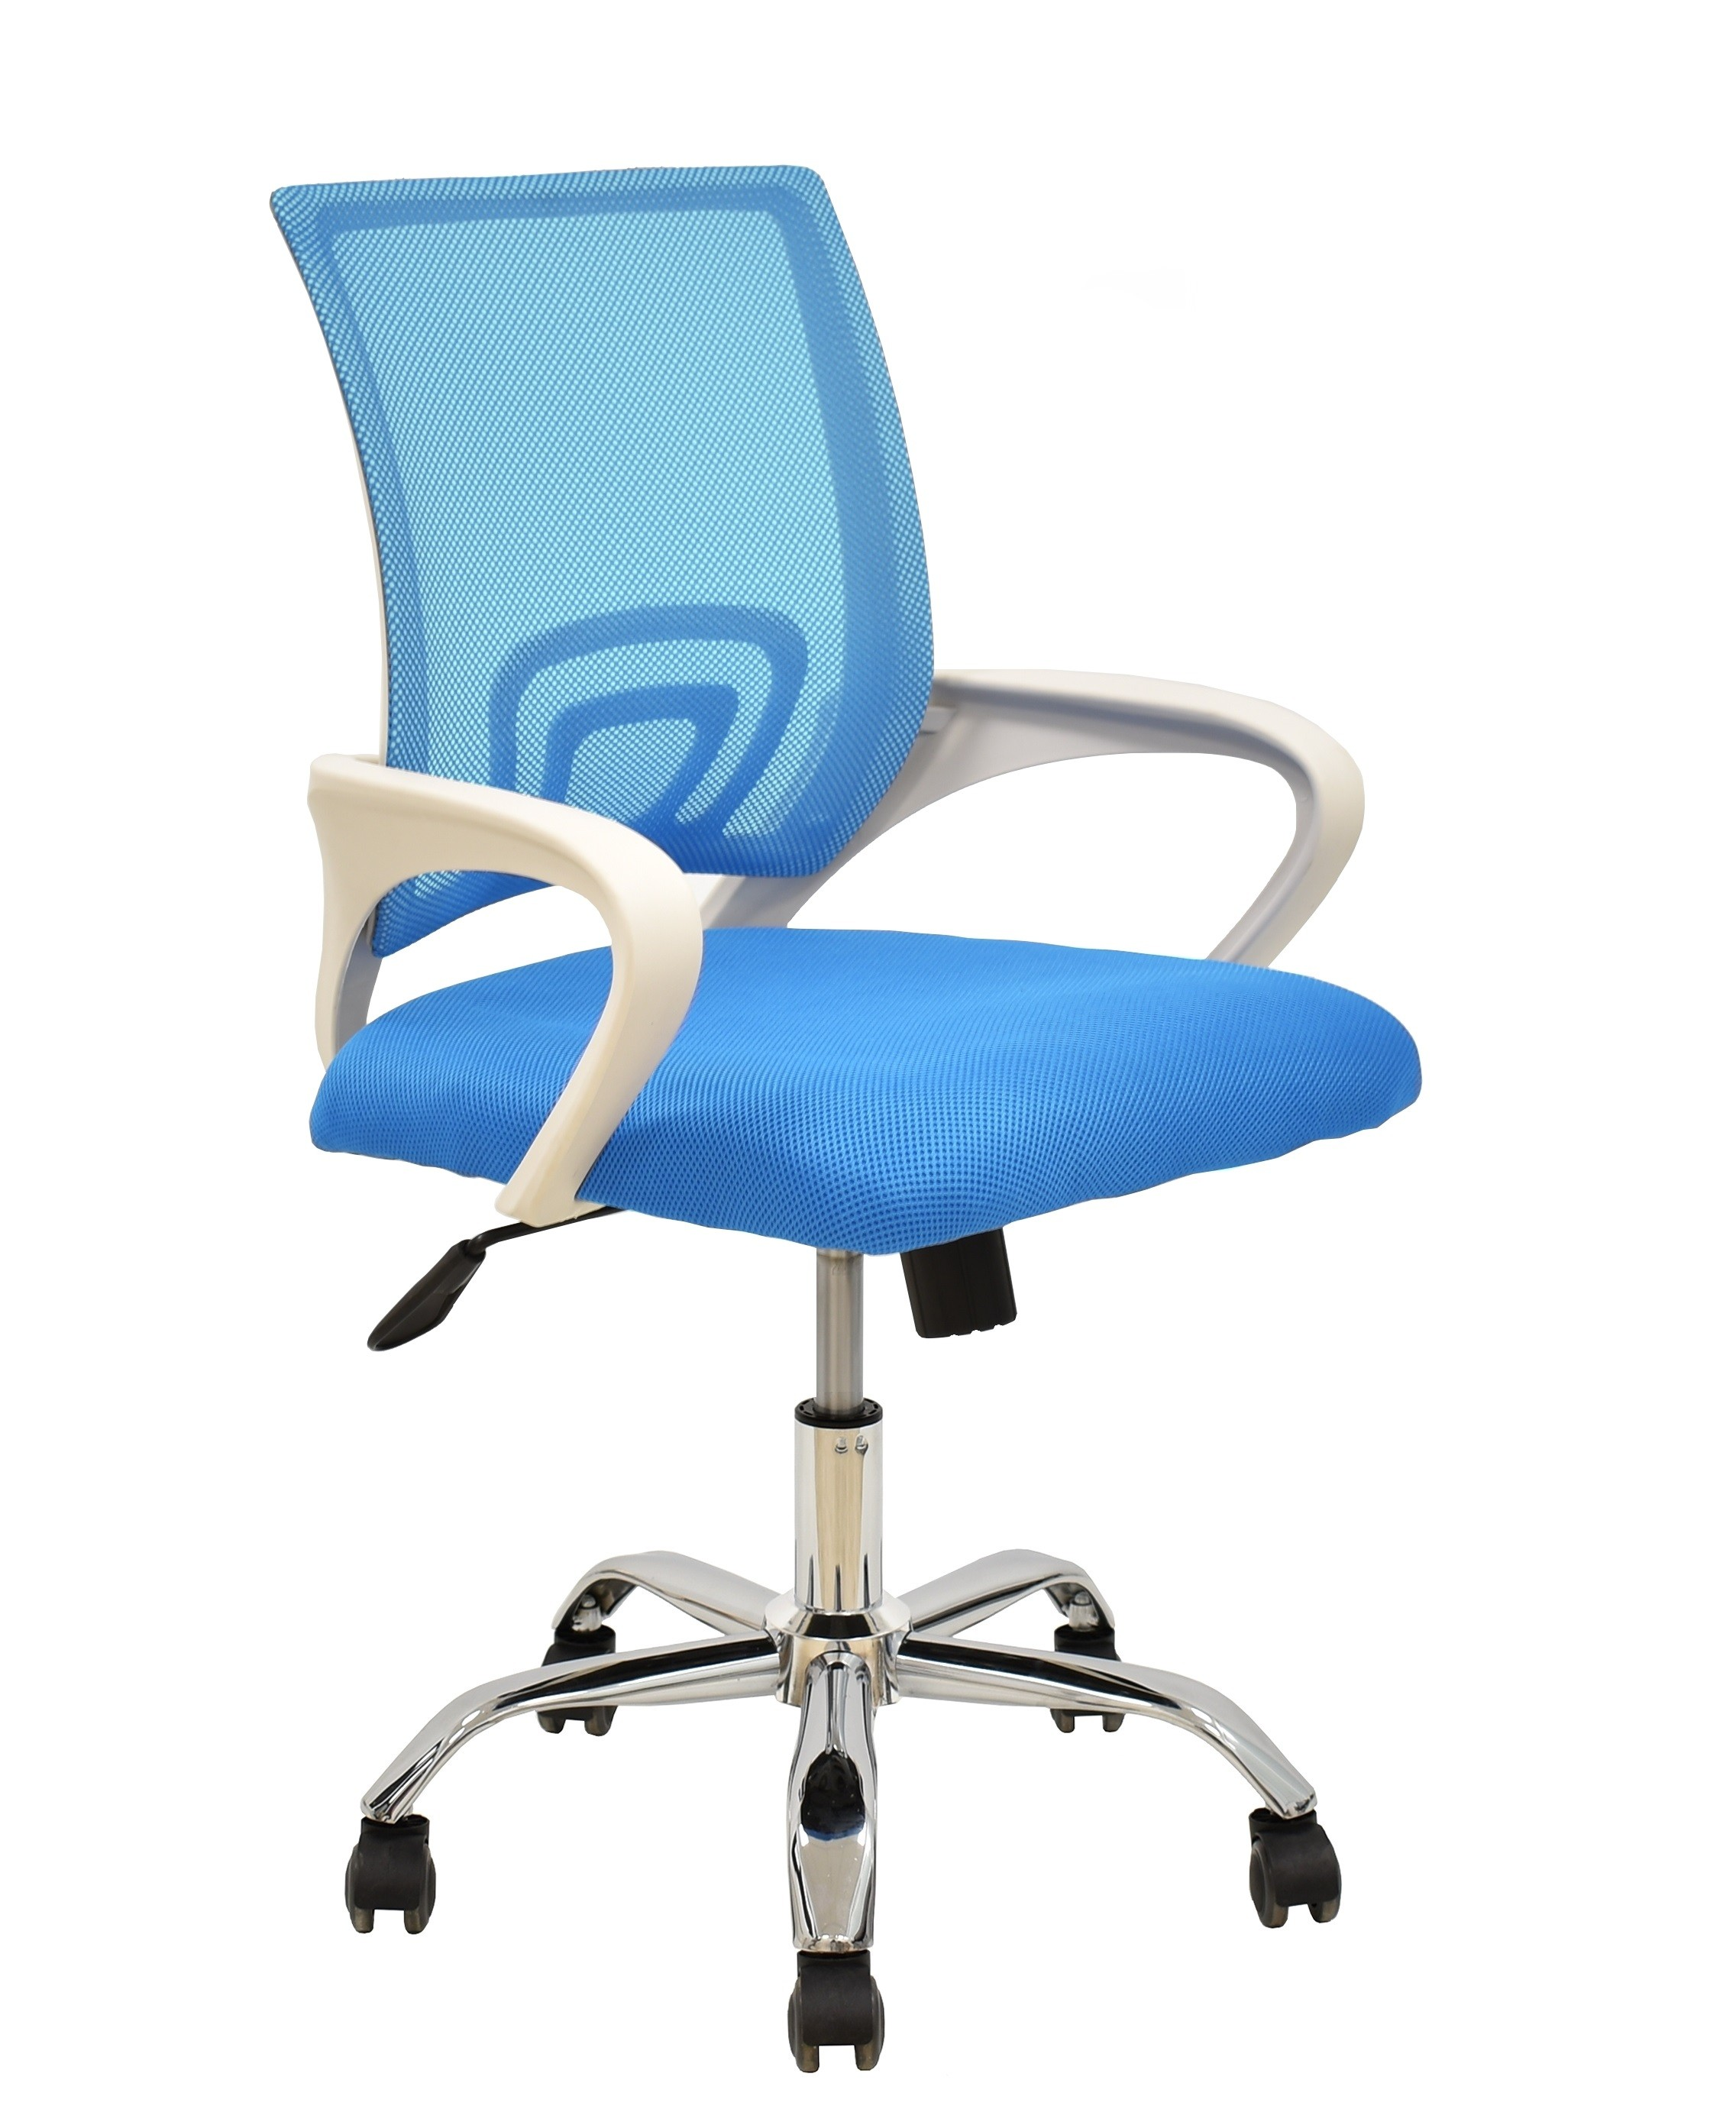 Office Armchair FISS NEW, White, Gas, Rocker, Mesh And Fabric Celeste